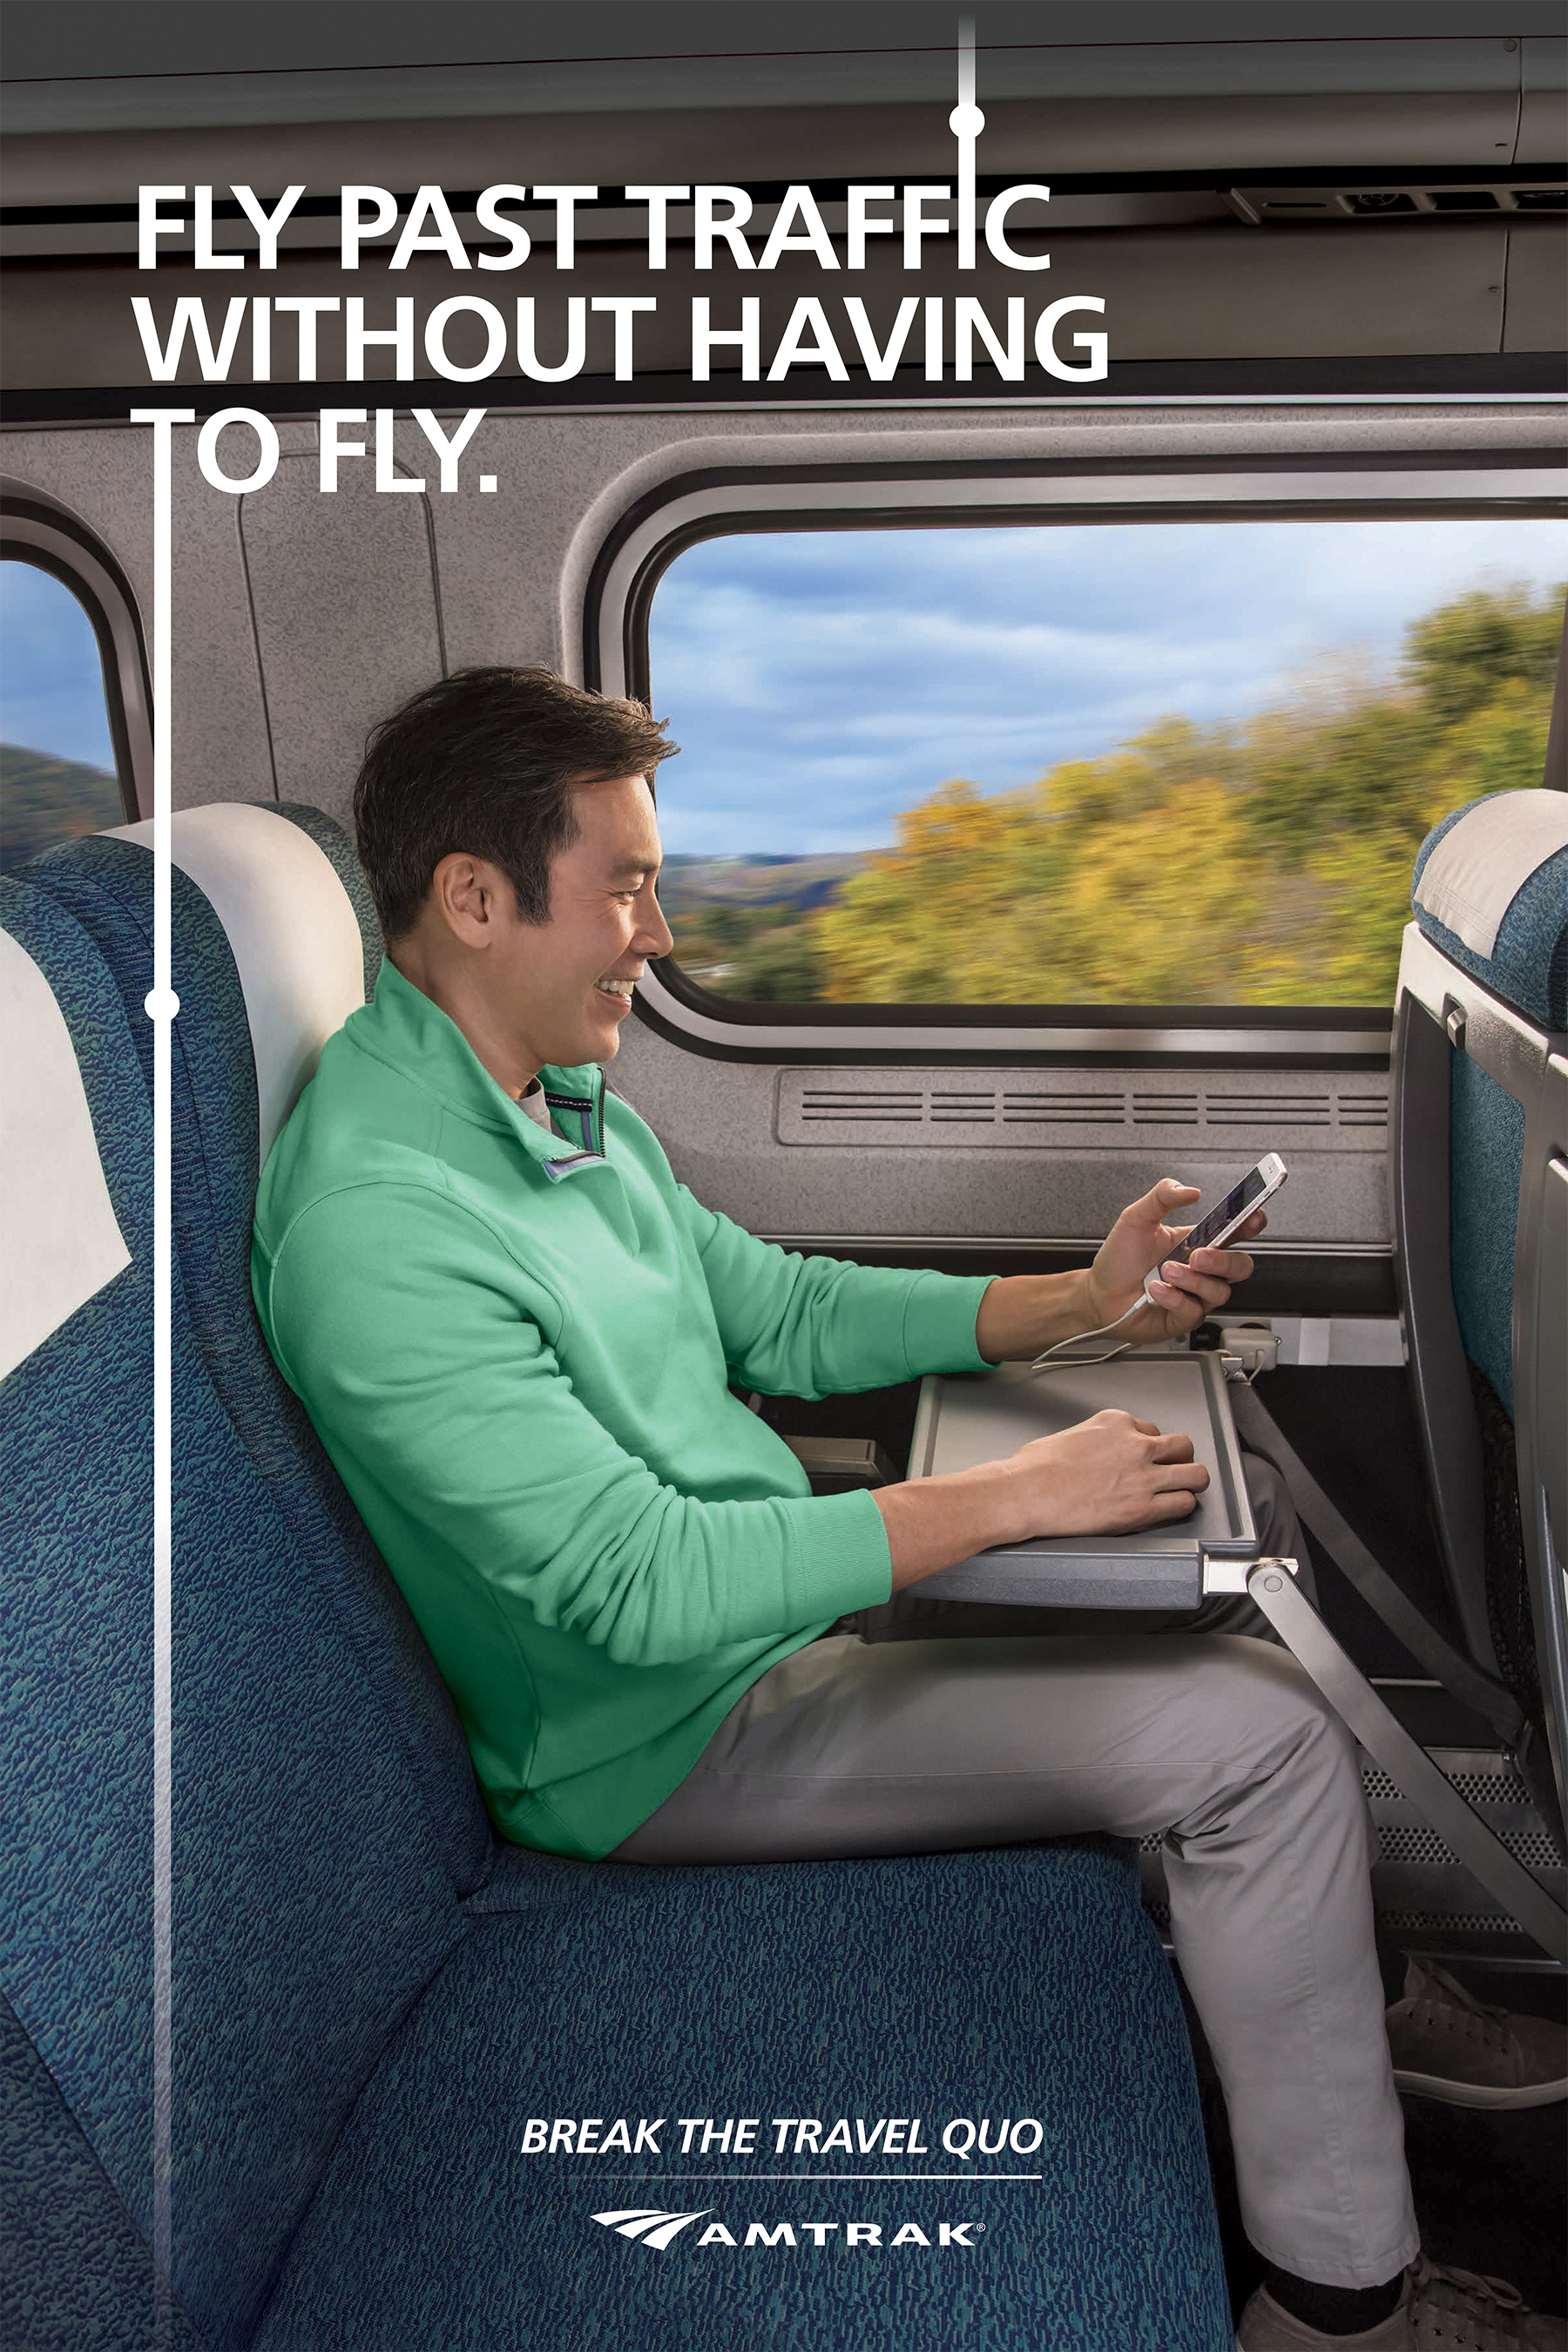 When traveling with Amtrak, you can fly past traffic without actually having to fly.